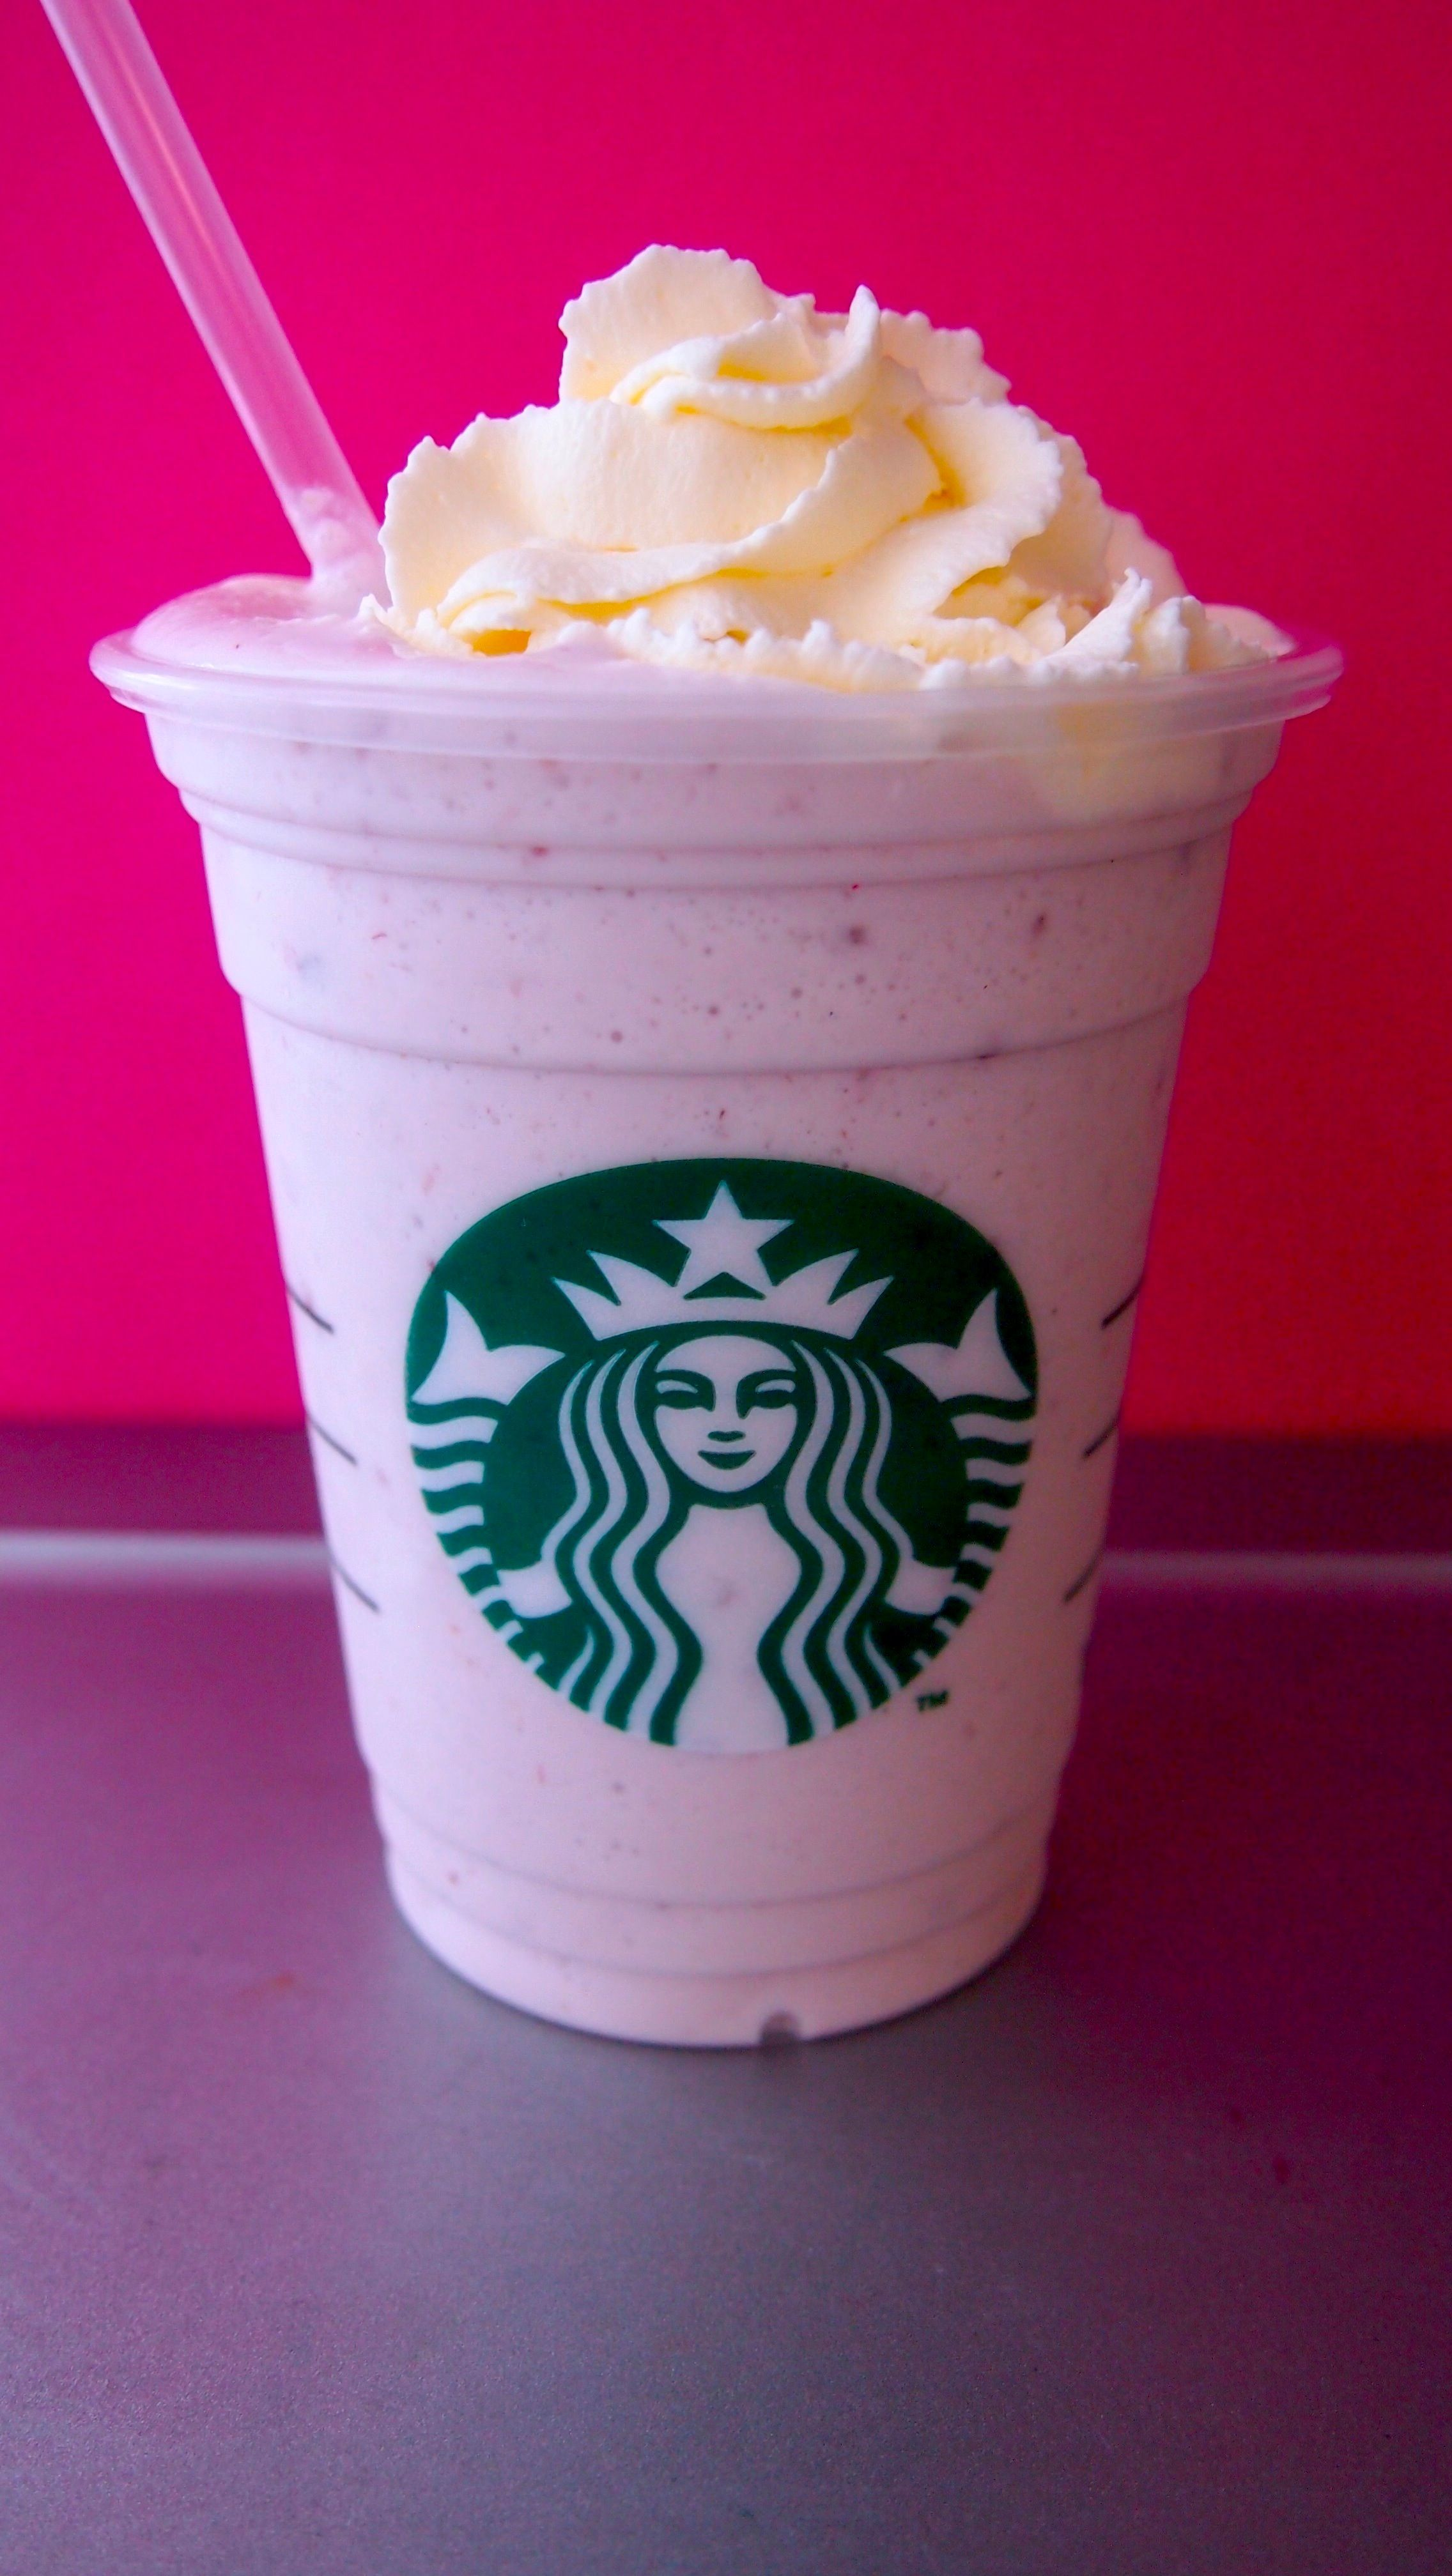 Starbucks Secret Menu Is Revealed In This Recipe For Their